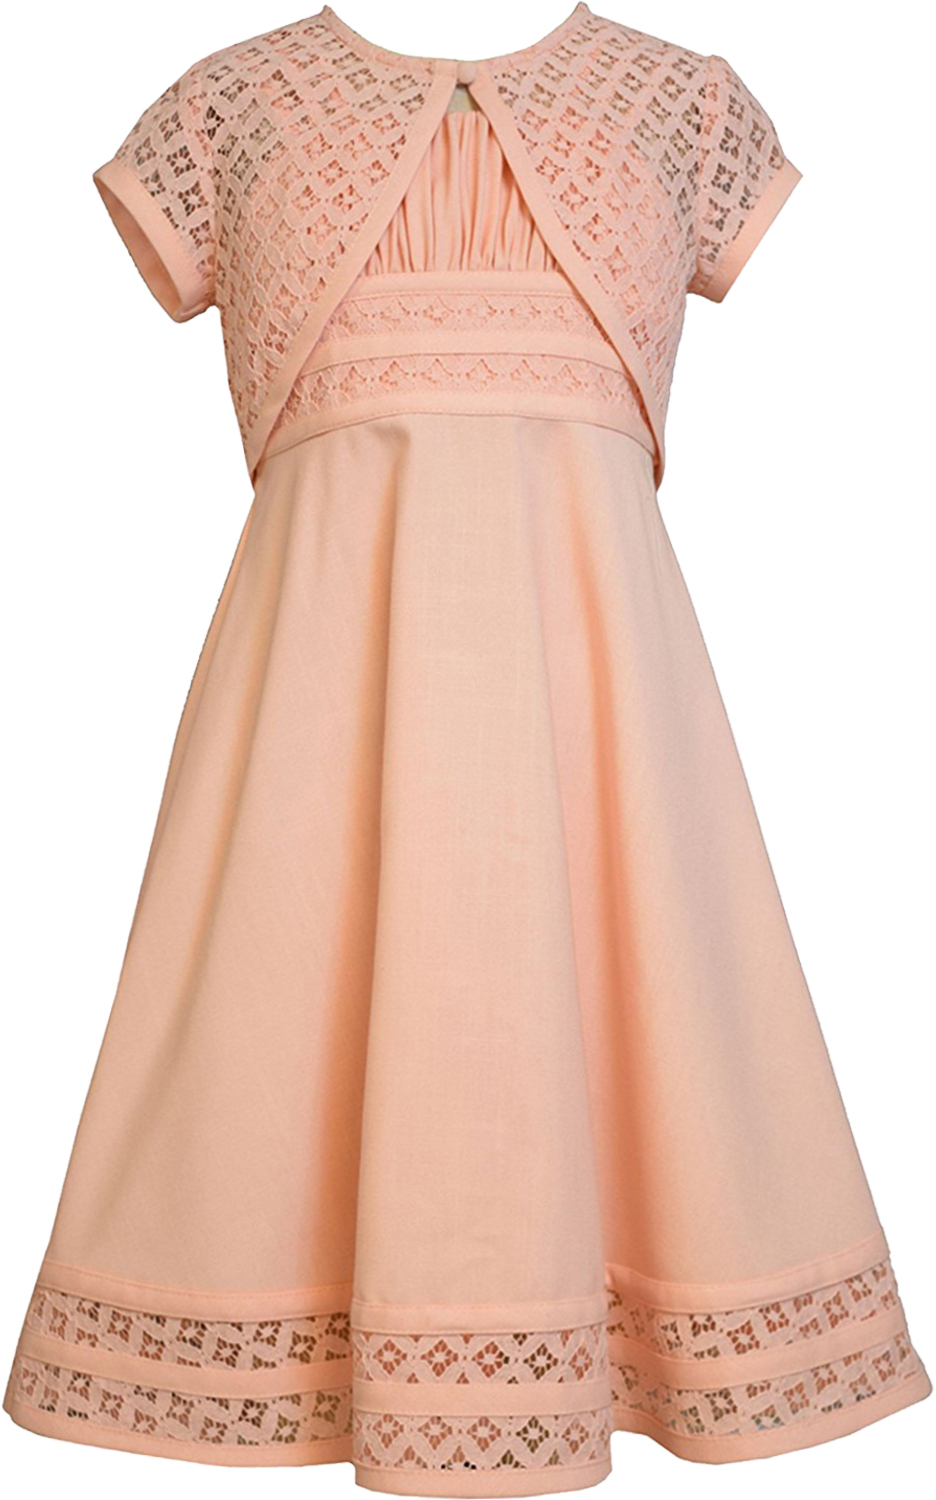 Bonnie Jean Big Girl Tween 7 16 Peach Linen And Lace Fit